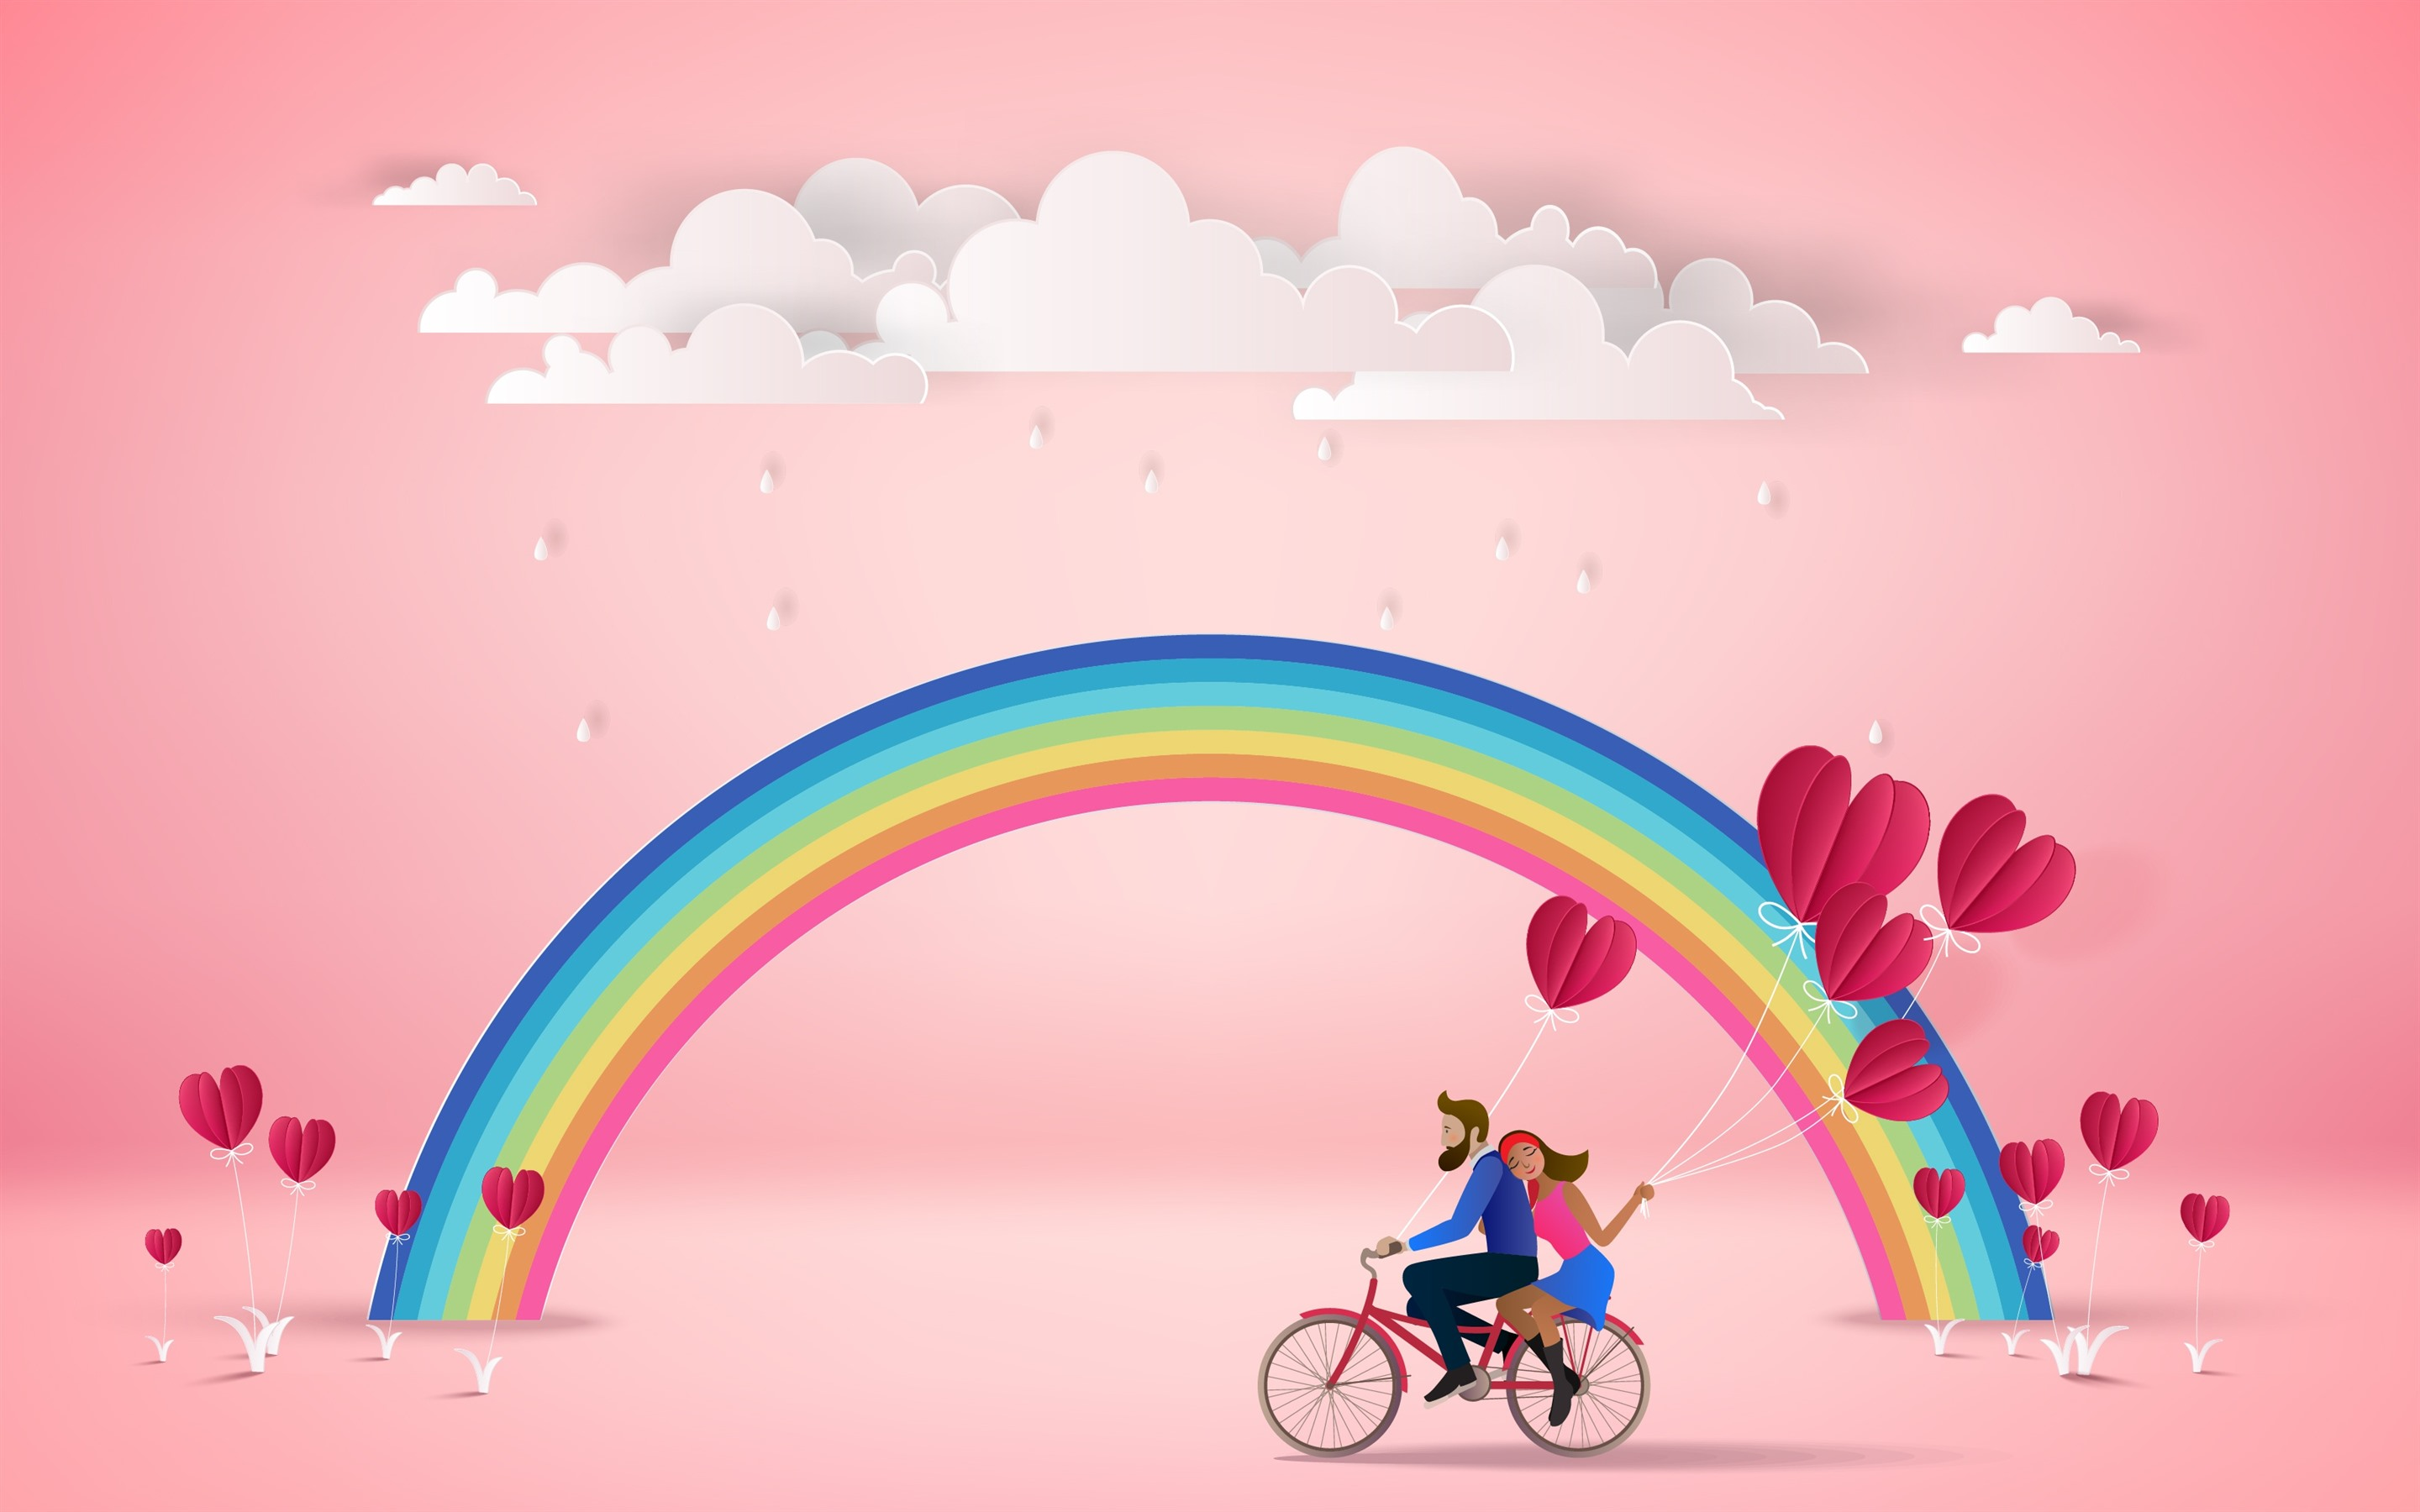 Wallpaper Rainbow Clouds Lovers Love Hearts Pink Background